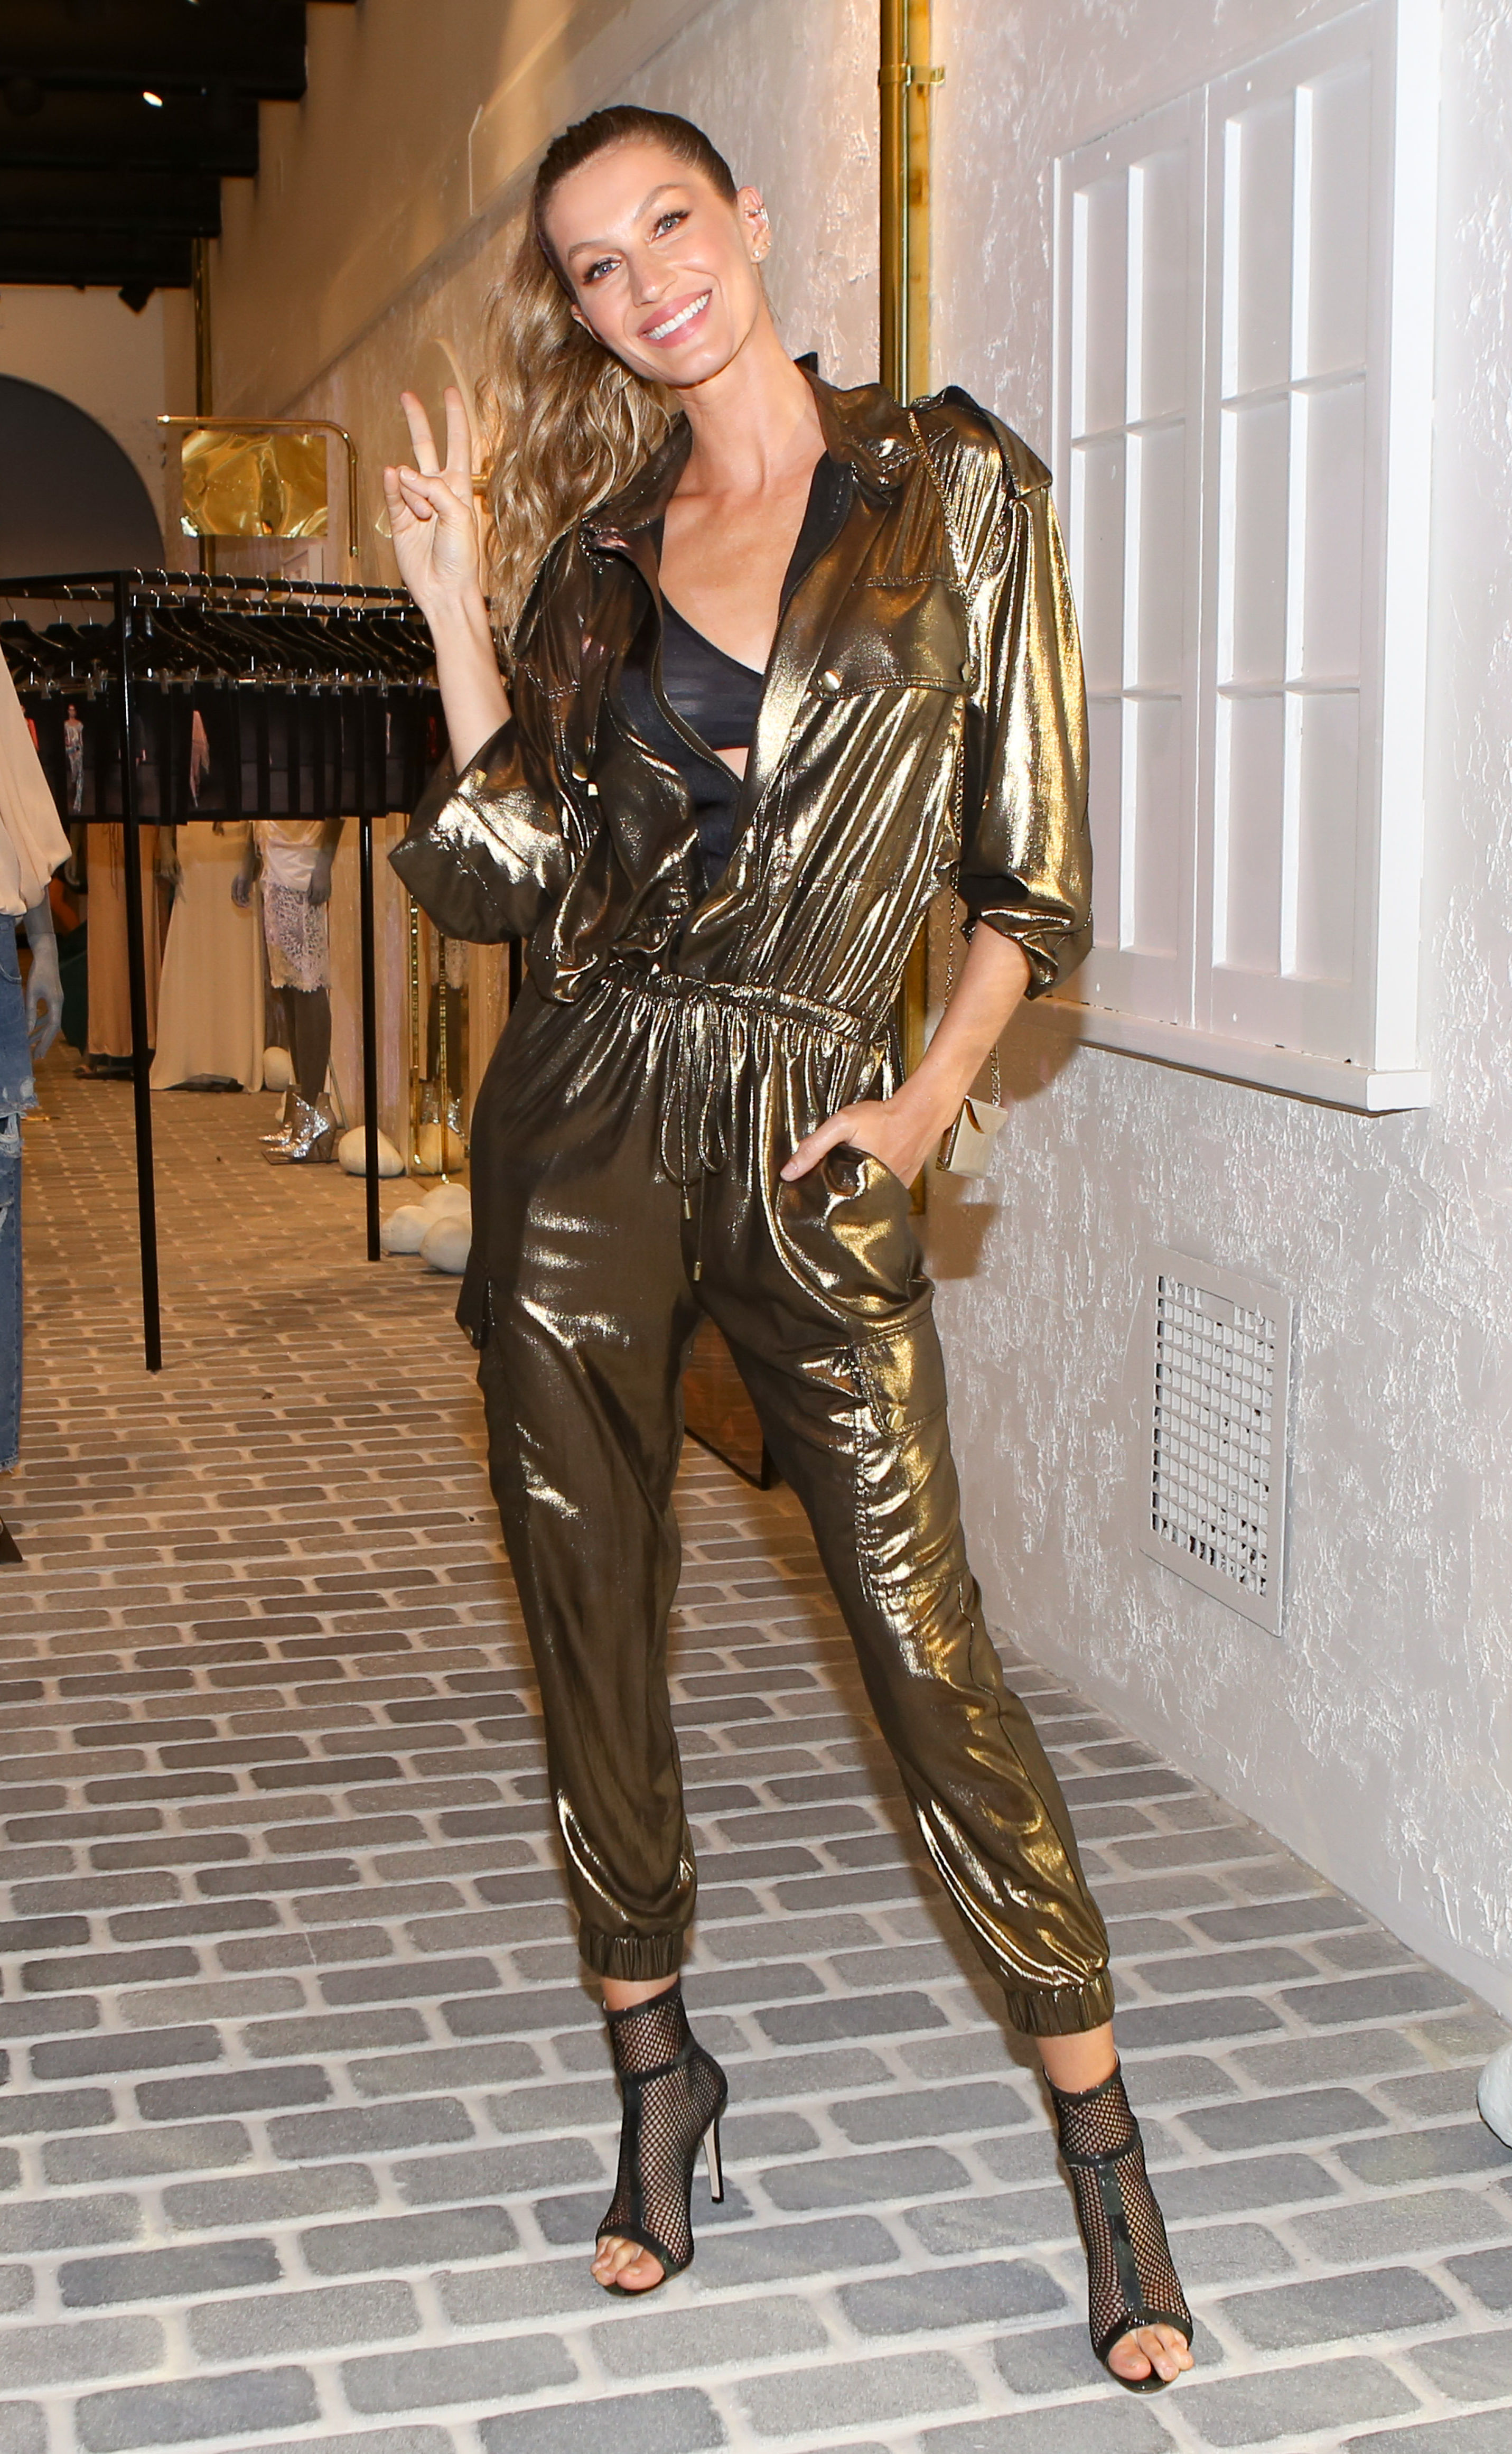 Gisele Bundchen attends the Rosa Cha store opening in Los Angeles on Nov. 2, 2018.